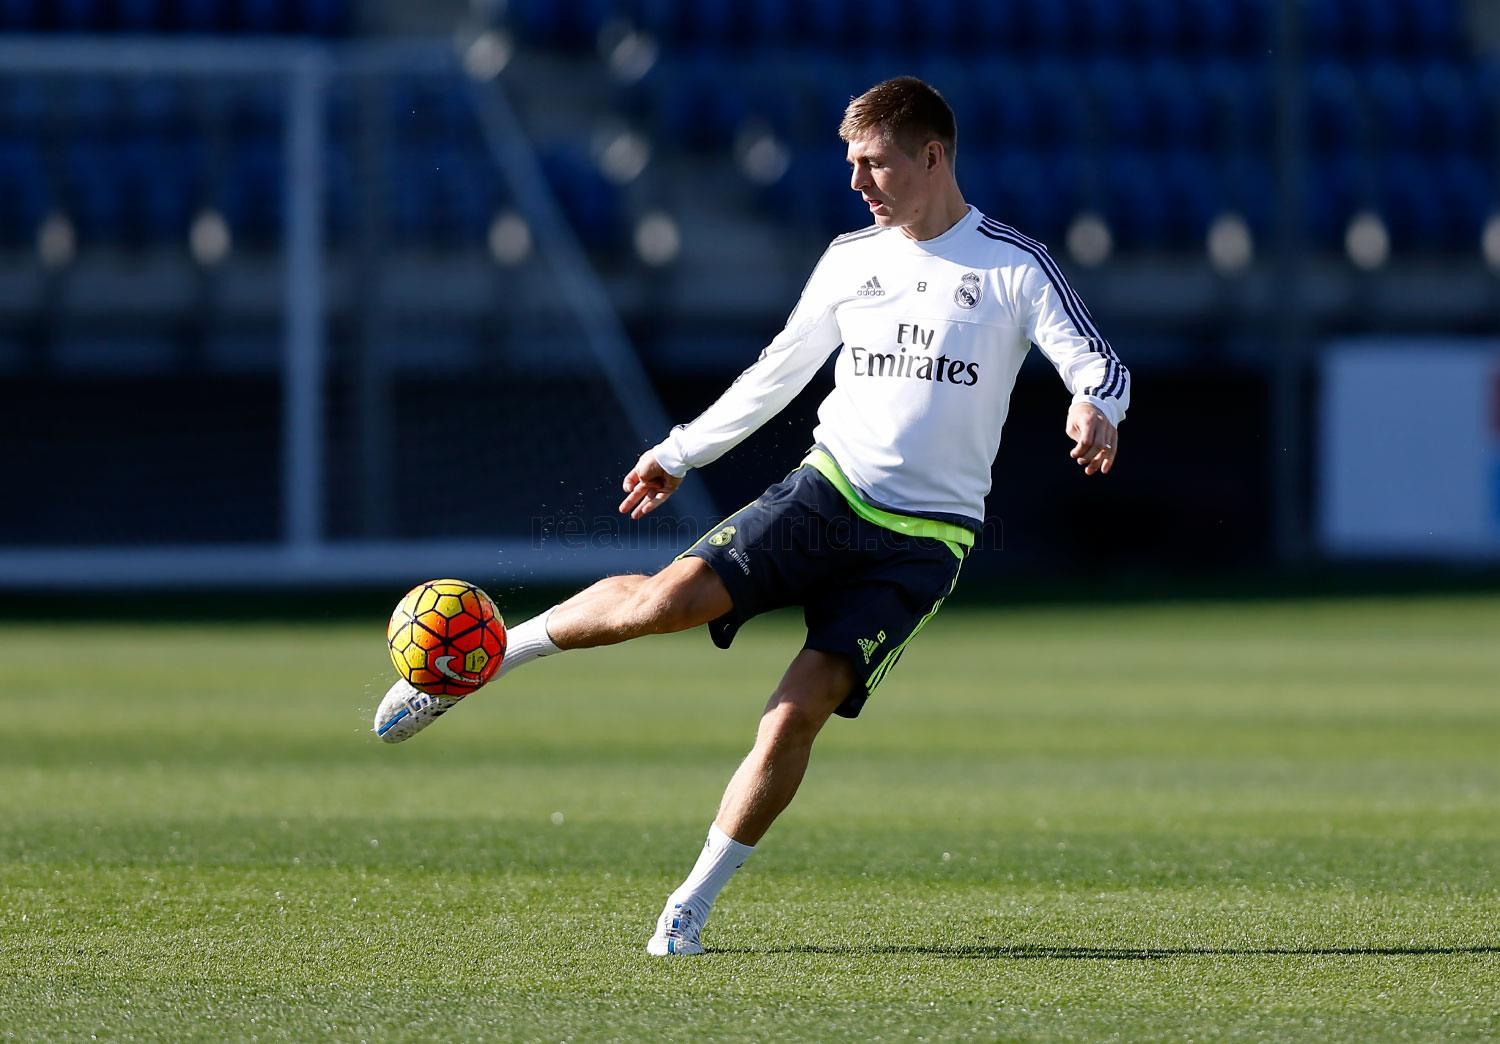 Real Madrid - Entrenamiento del Real Madrid - 07-11-2015